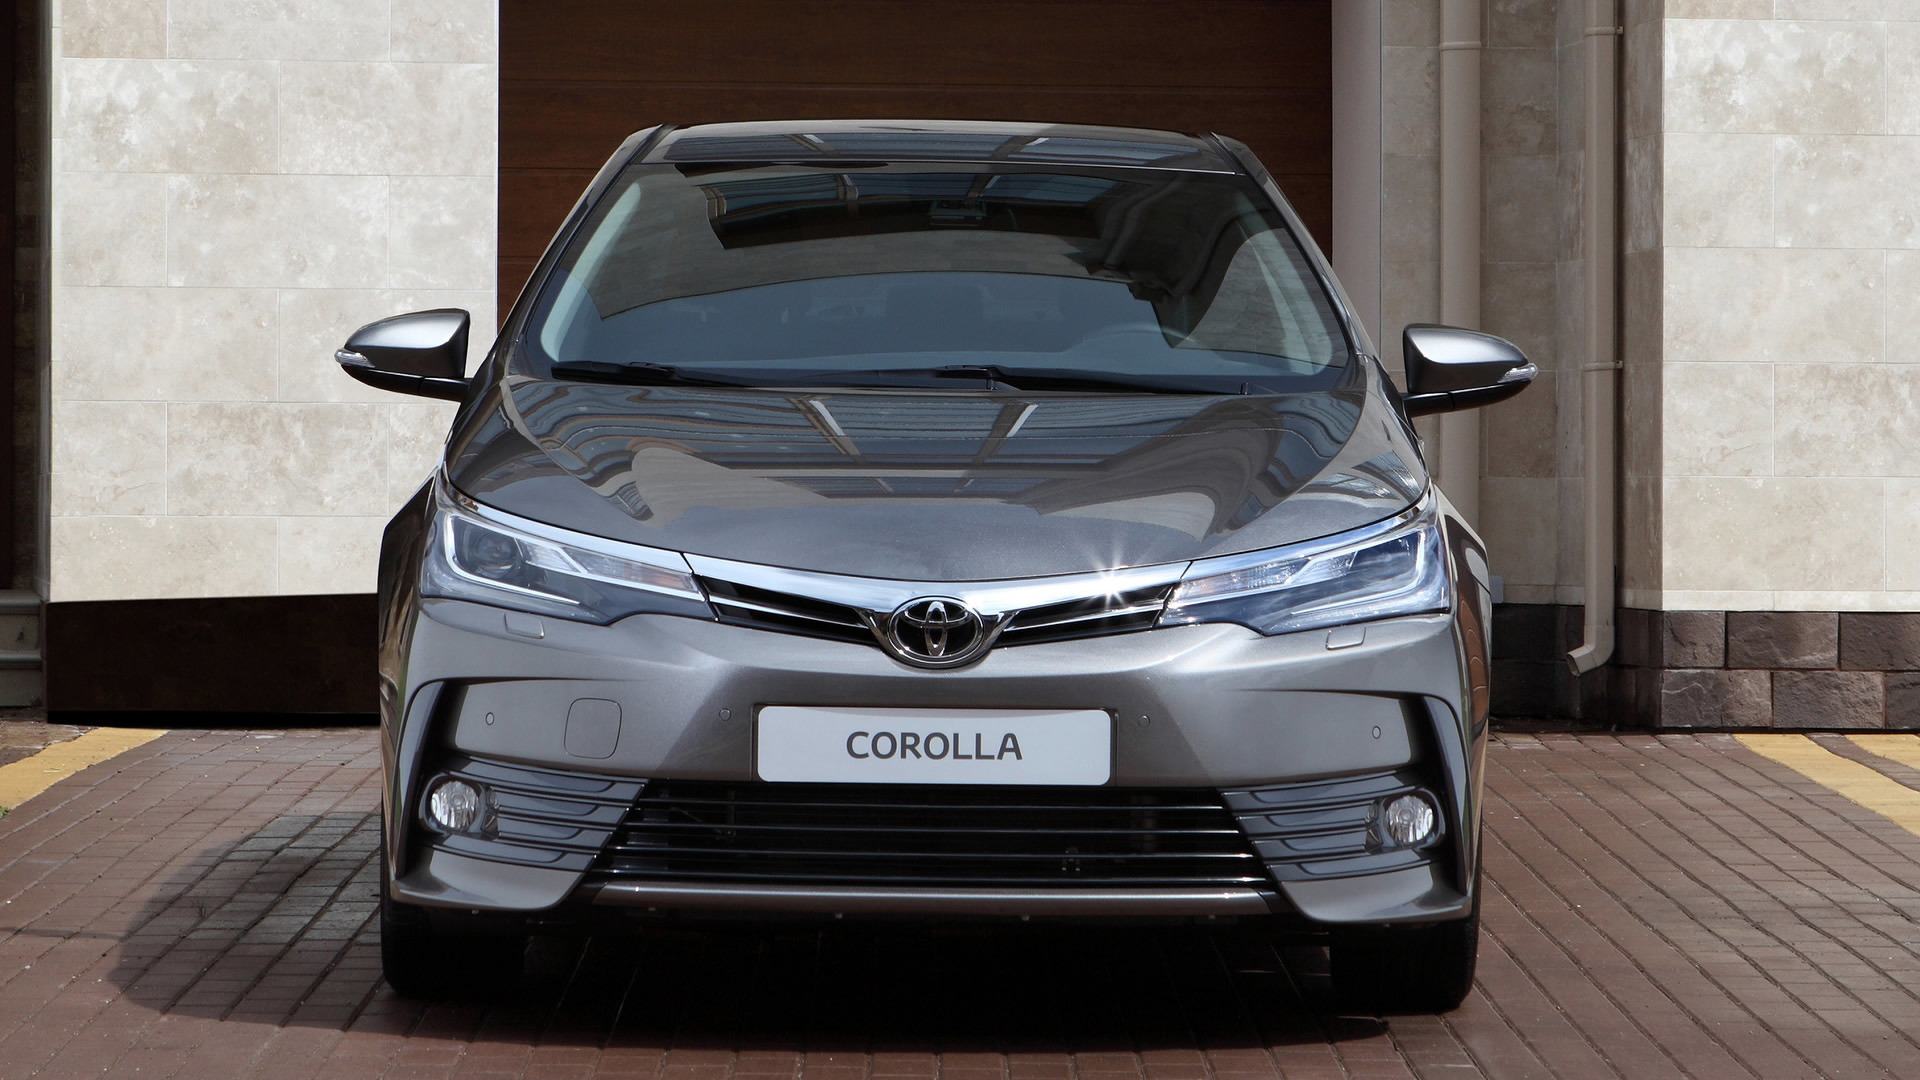 2018 Toyota Corolla | Autos Price, Release Date and Rumors